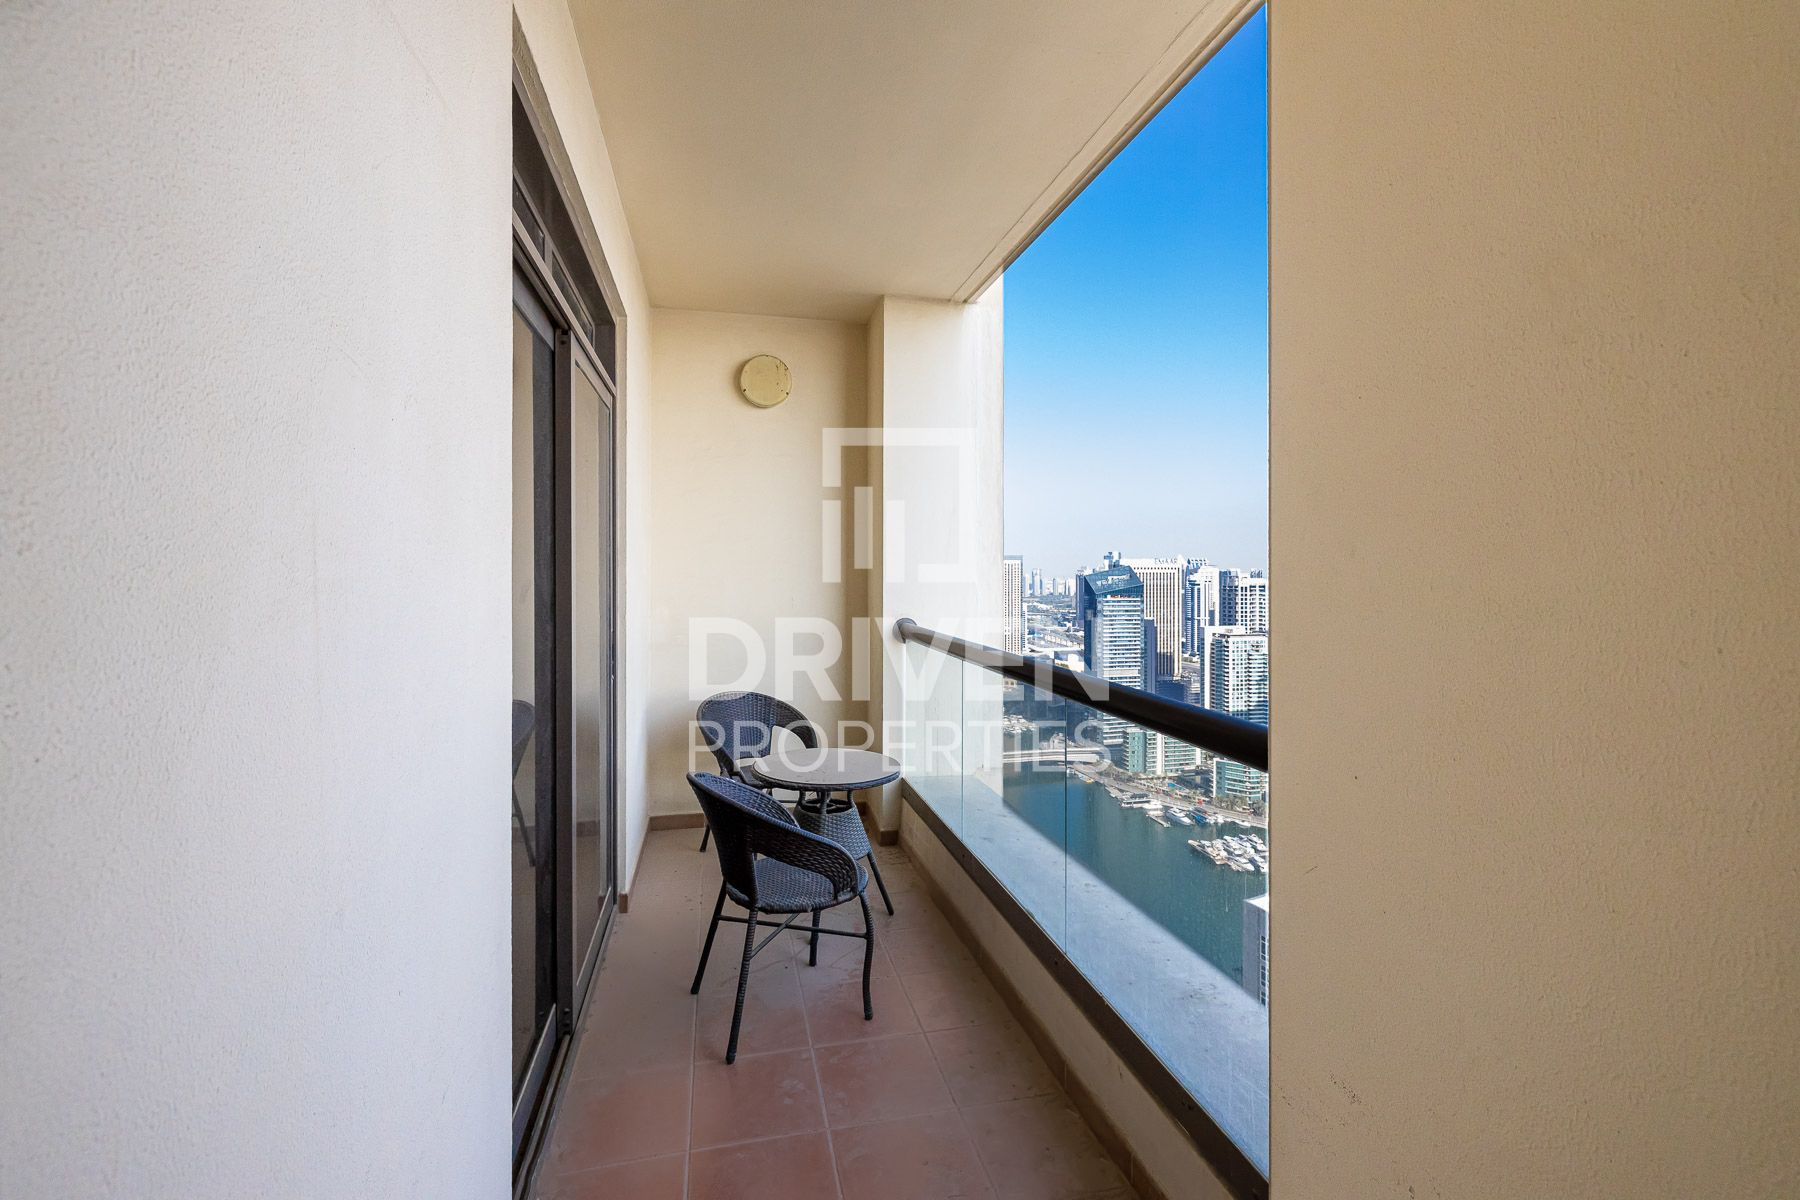 Apartment for Rent in Amwaj 4 - Jumeirah Beach Residence